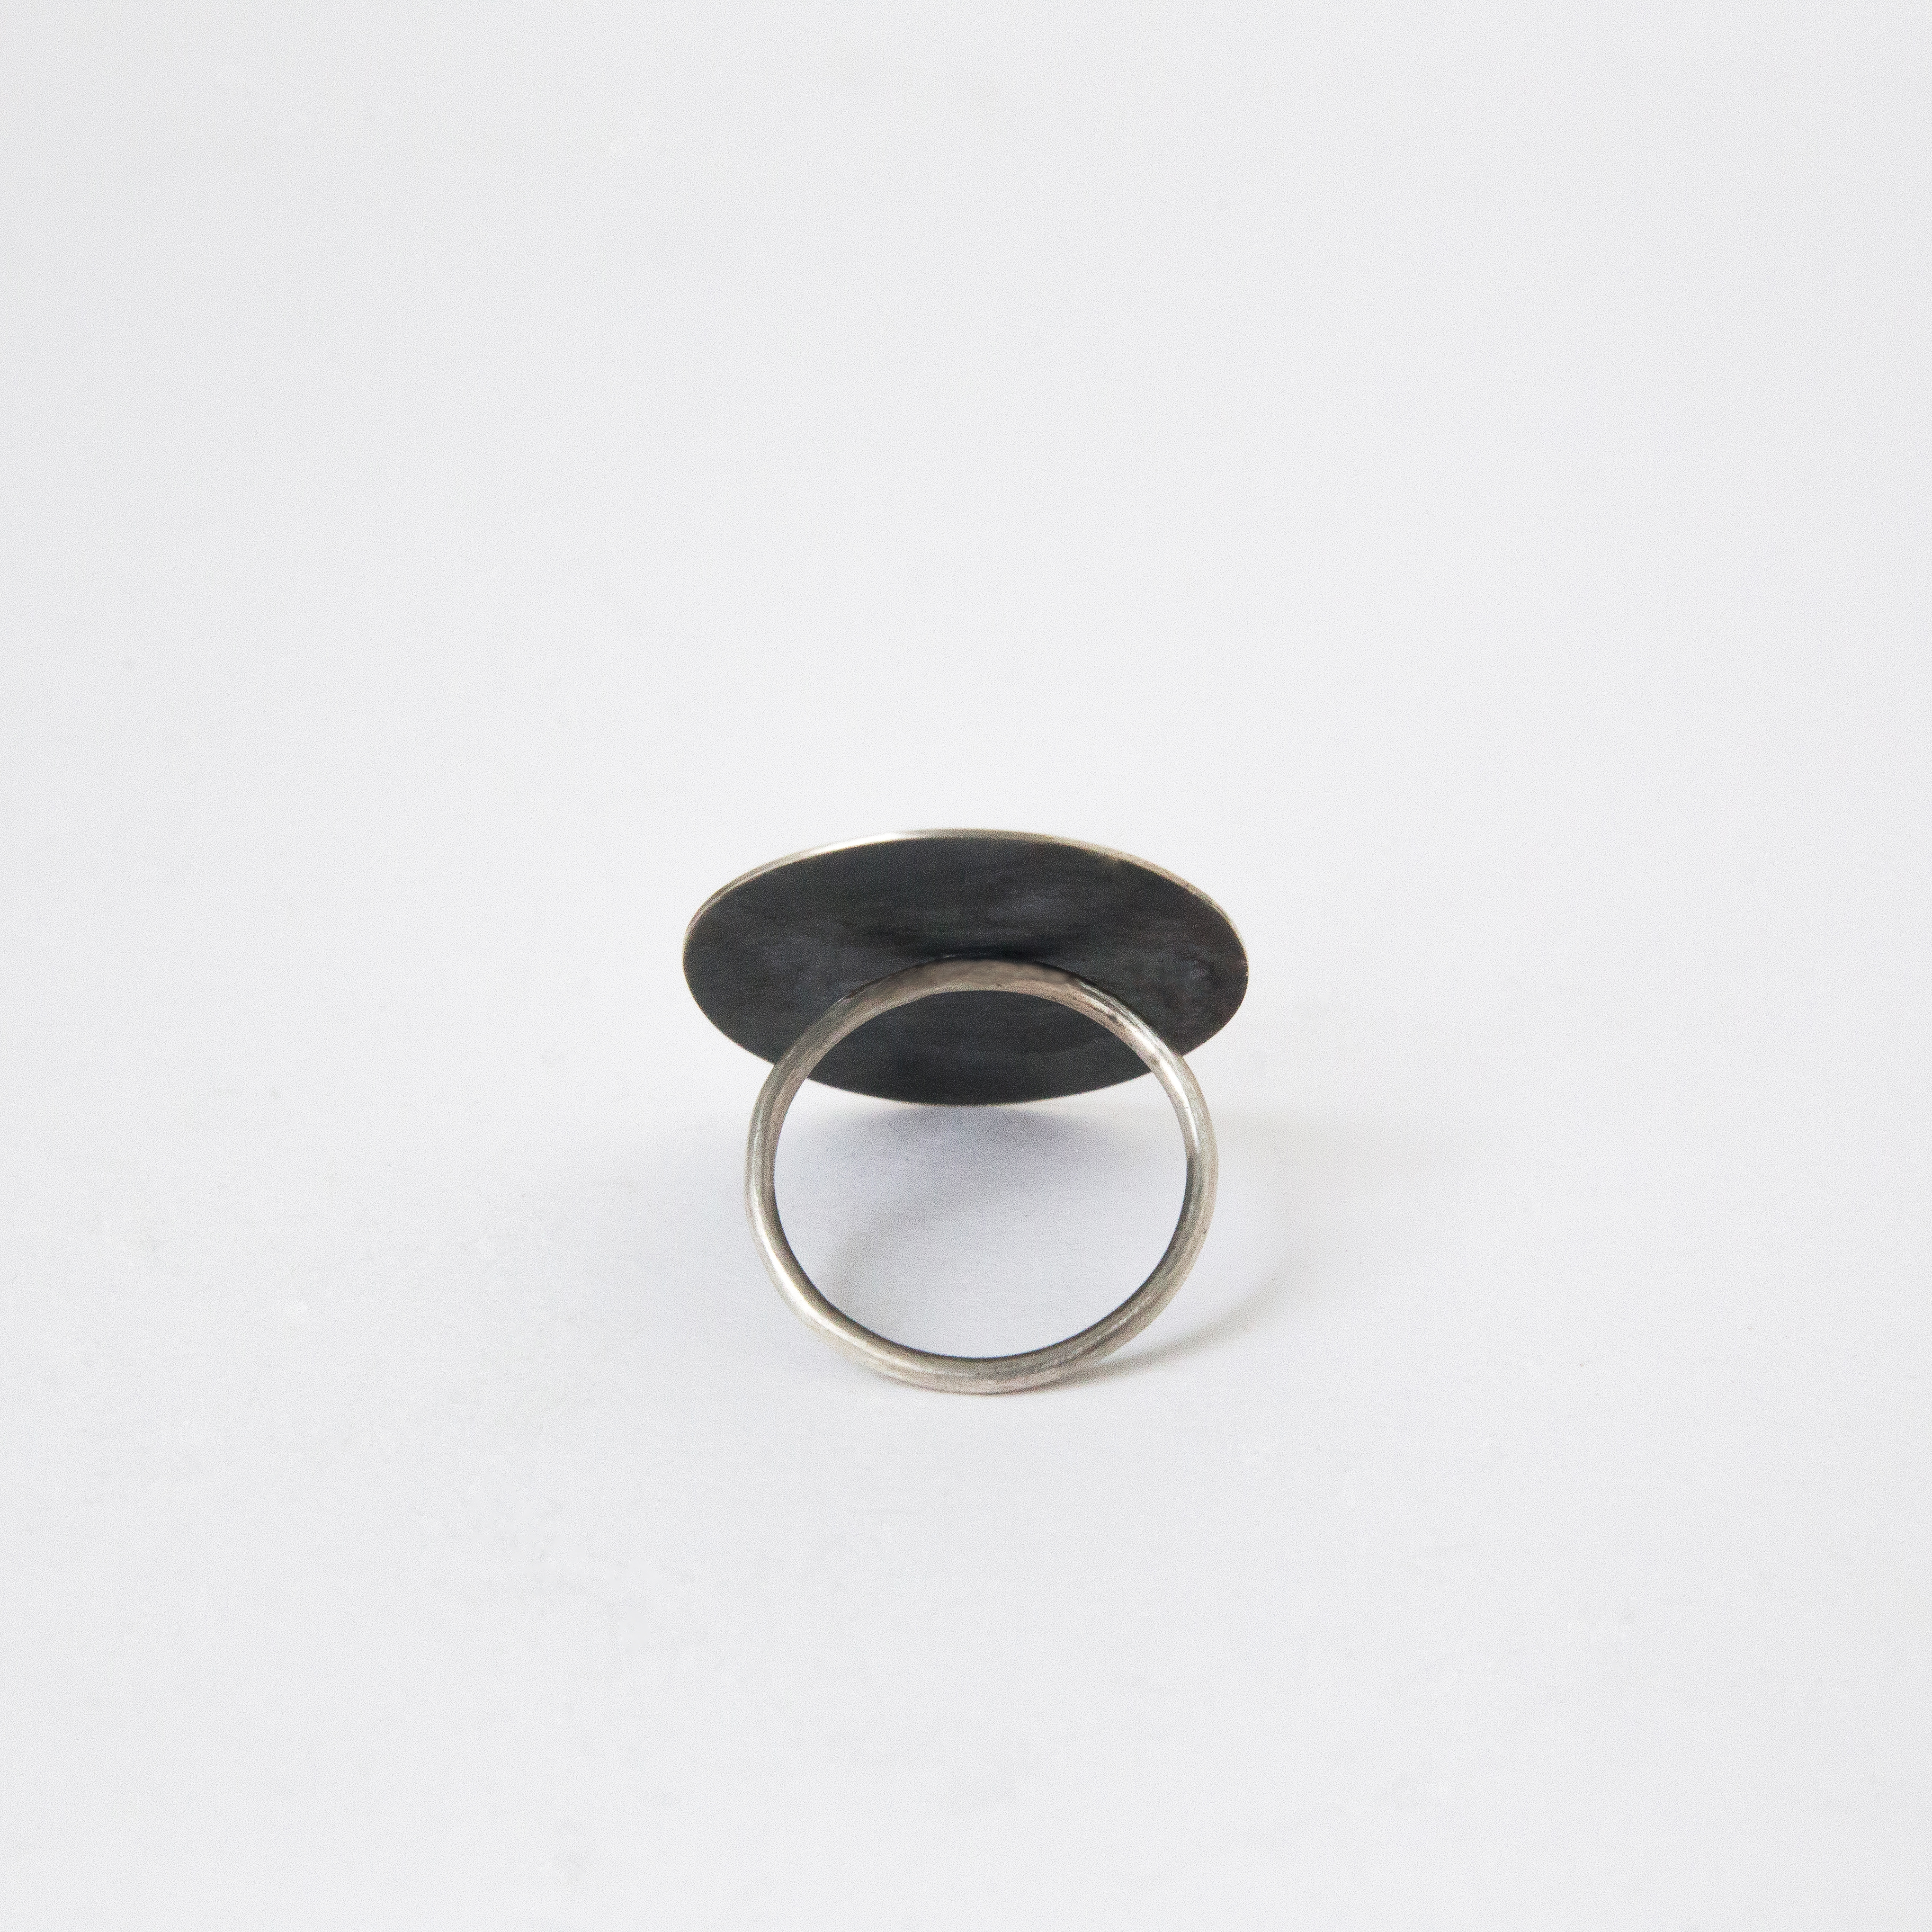 Minimalist silver statement ring by Dovile B